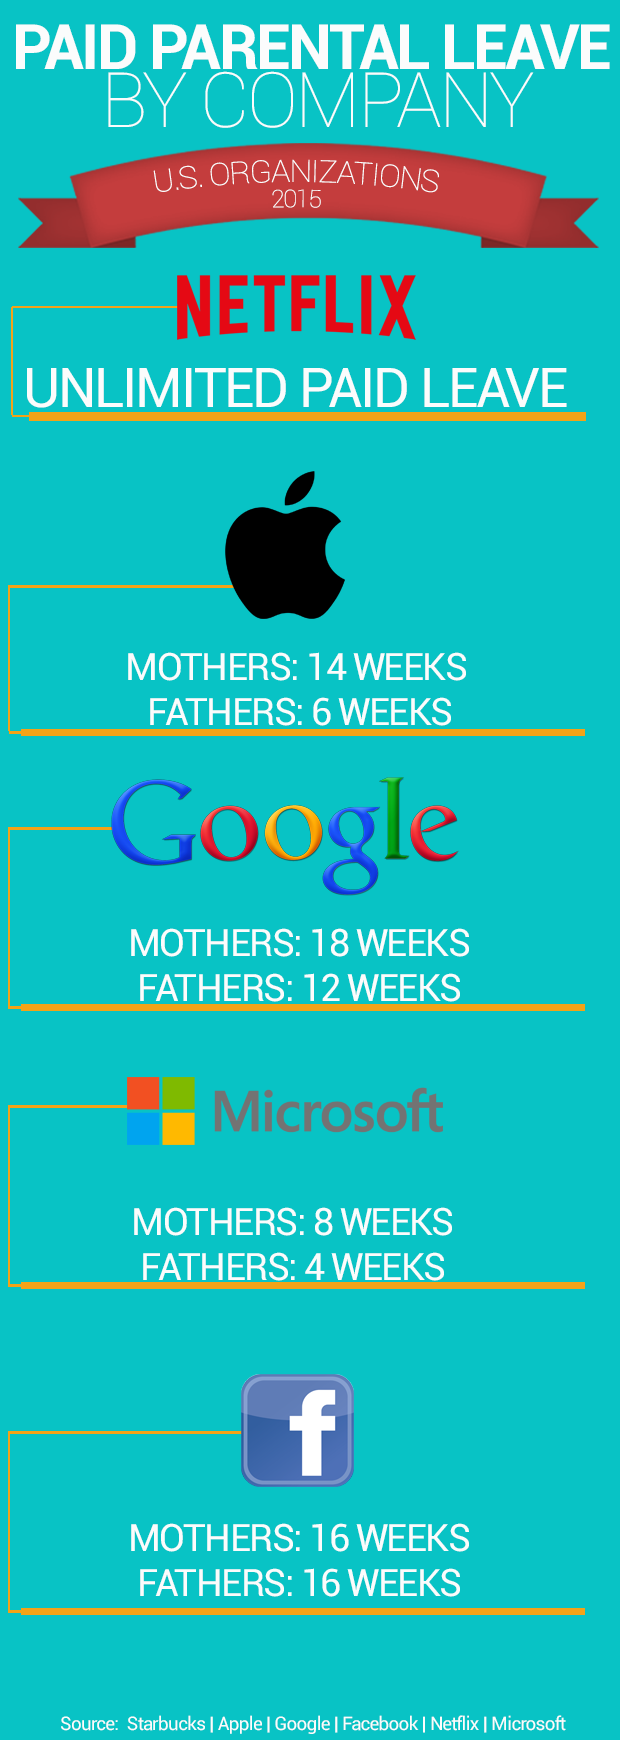 Parental leave by the numbers